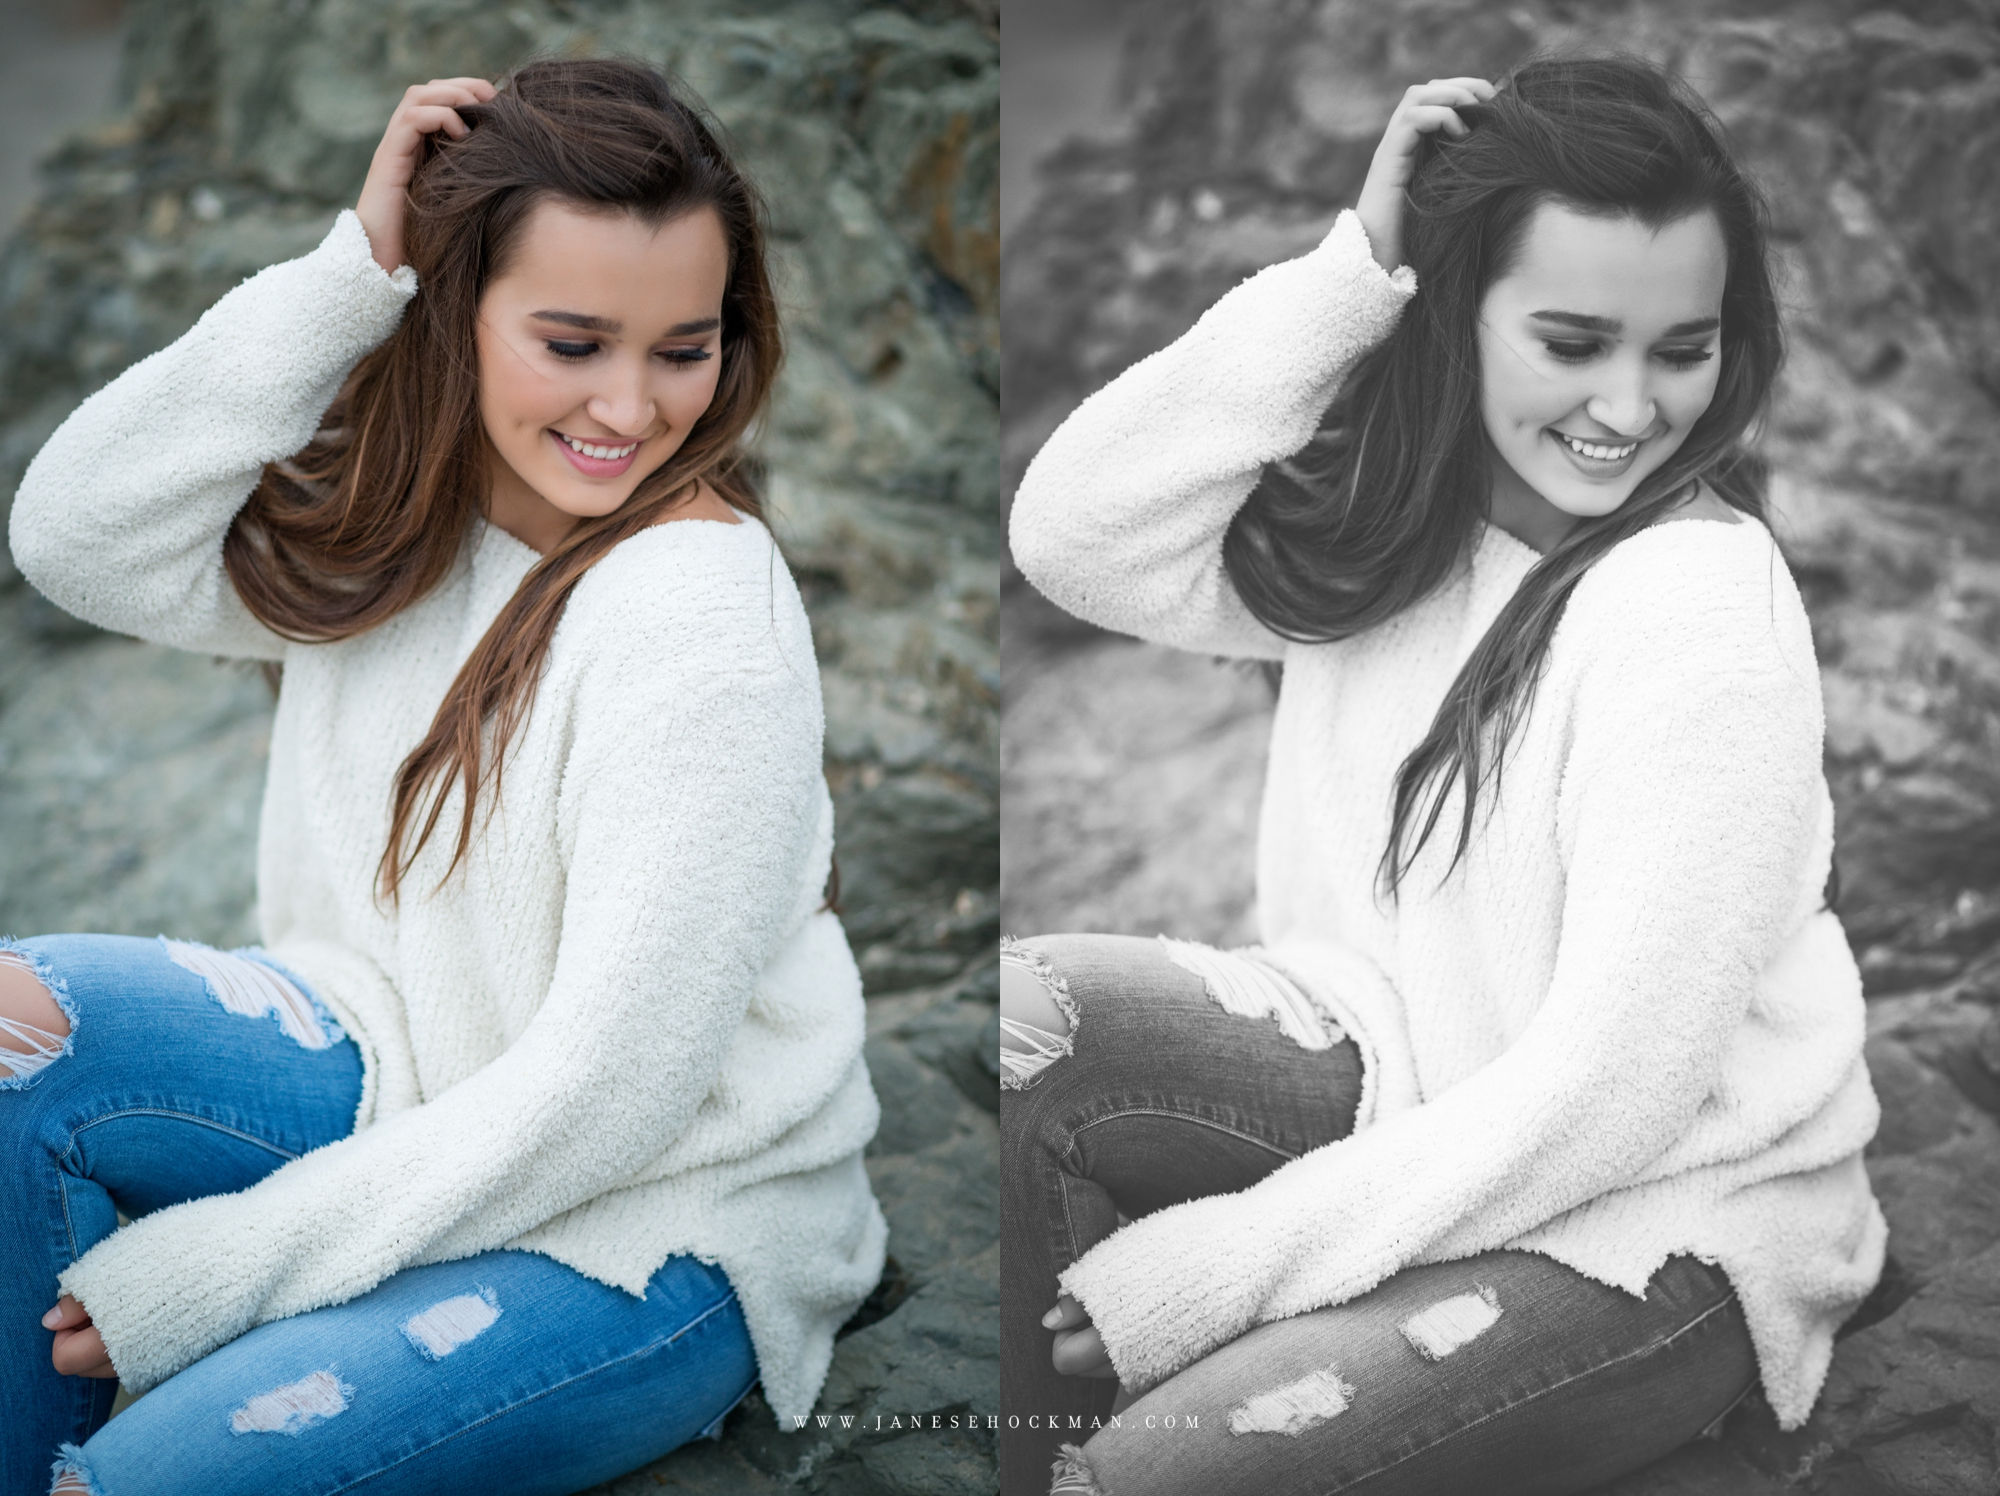 Tatum | Janese Hockman Photography | High School Senior Portraits | San Luis Obispo, California 2.jpg